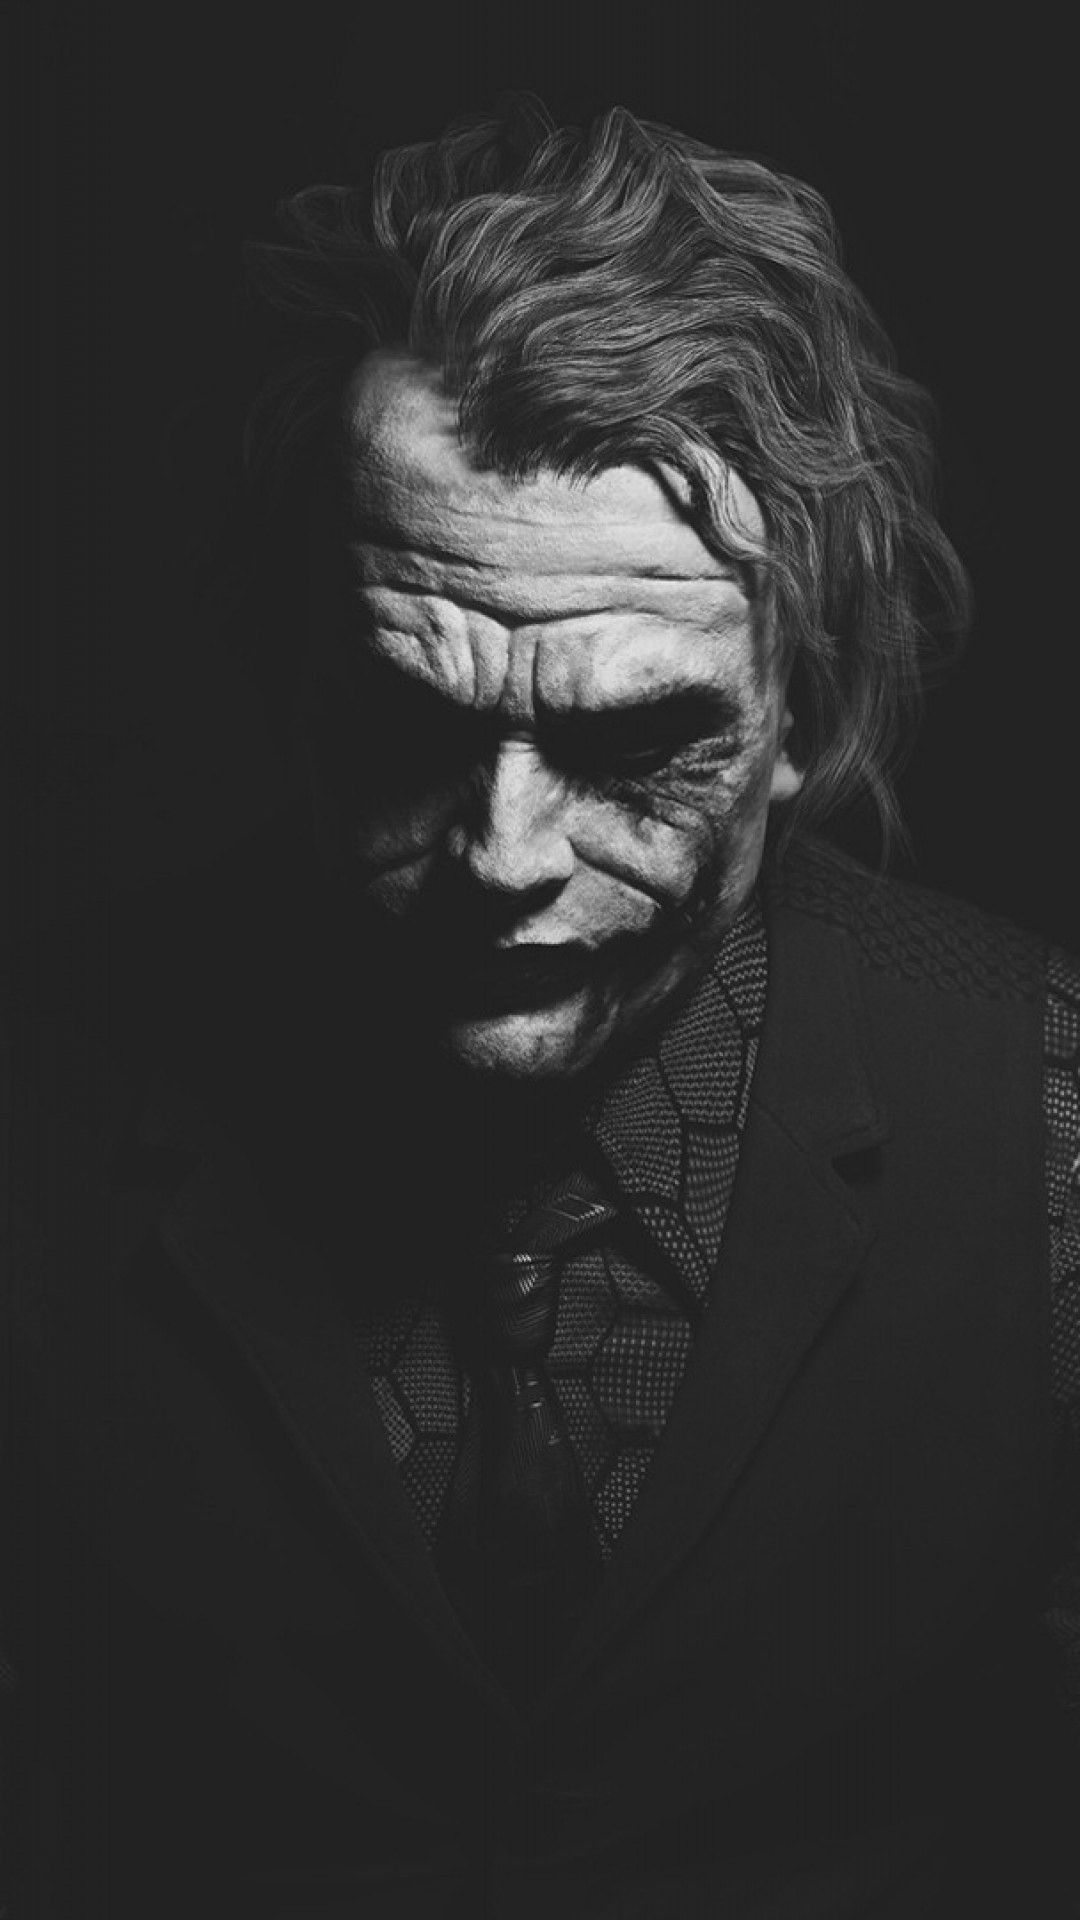 The Joker Iphone Wallpapers Top Free The Joker Iphone Backgrounds Wallpaperaccess